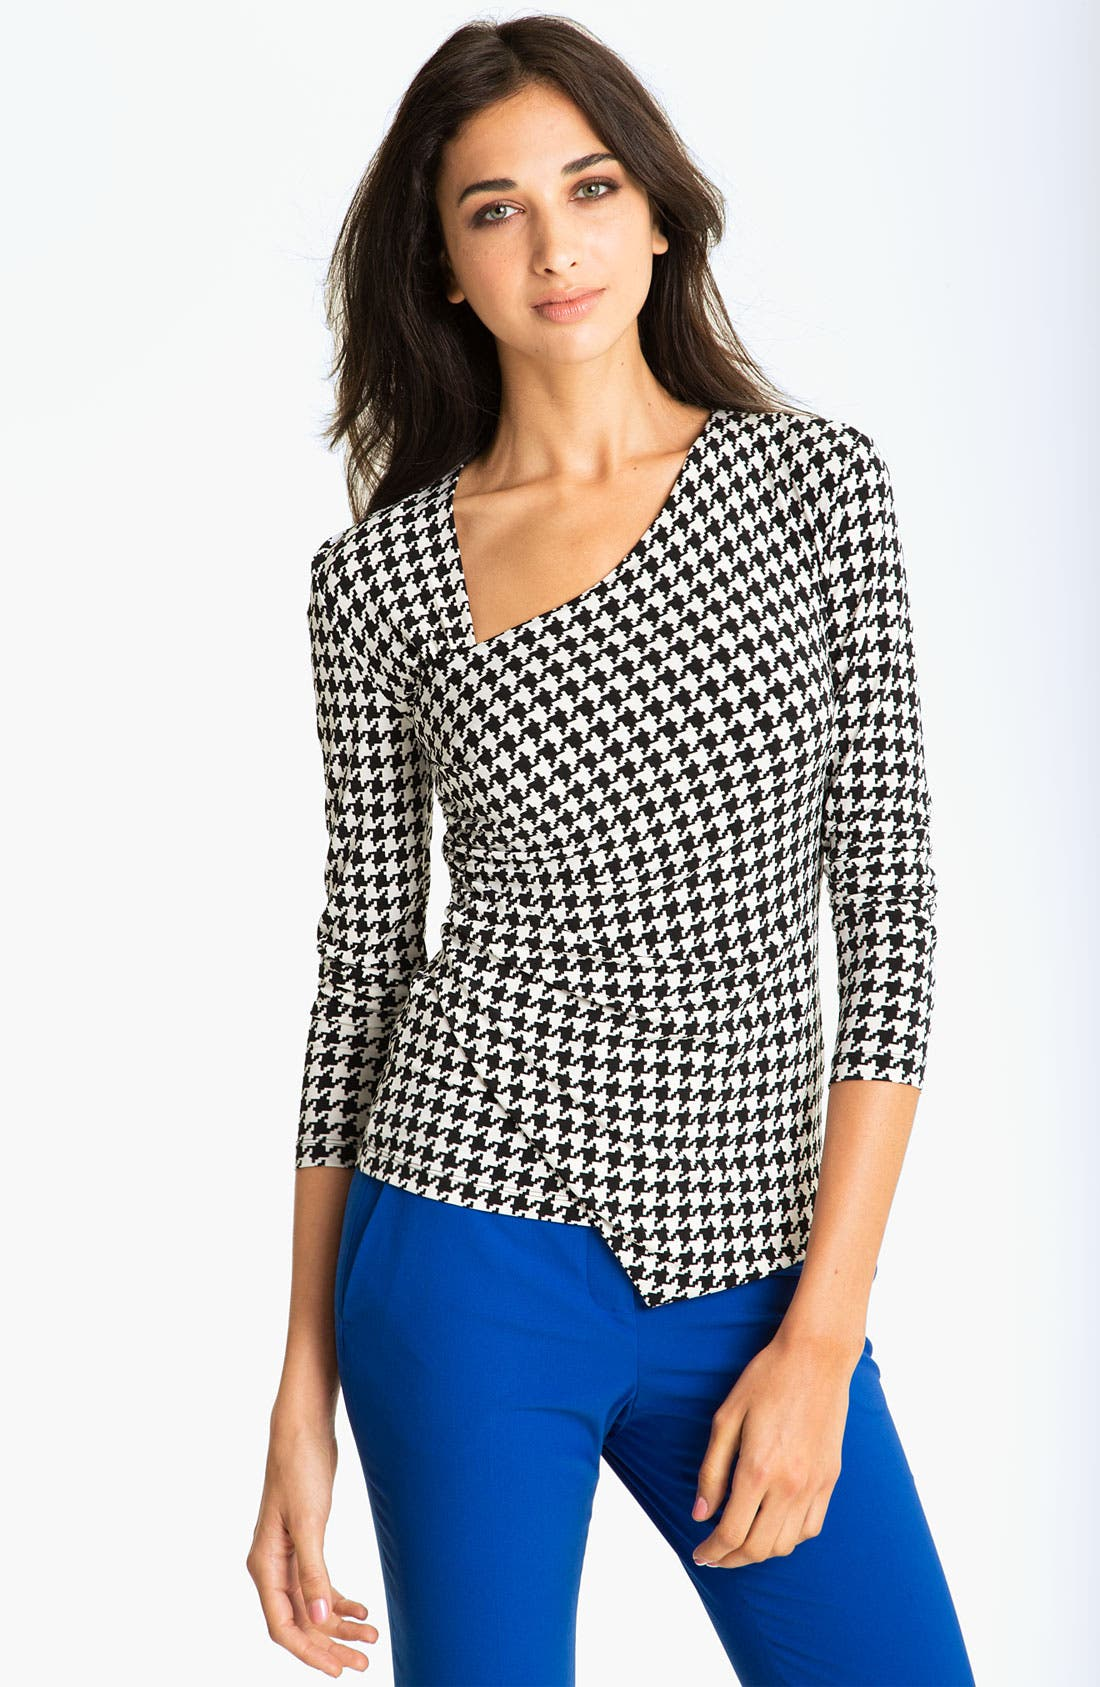 Alternate Image 1 Selected - Vince Camuto Faux Wrap Houndstooth Top